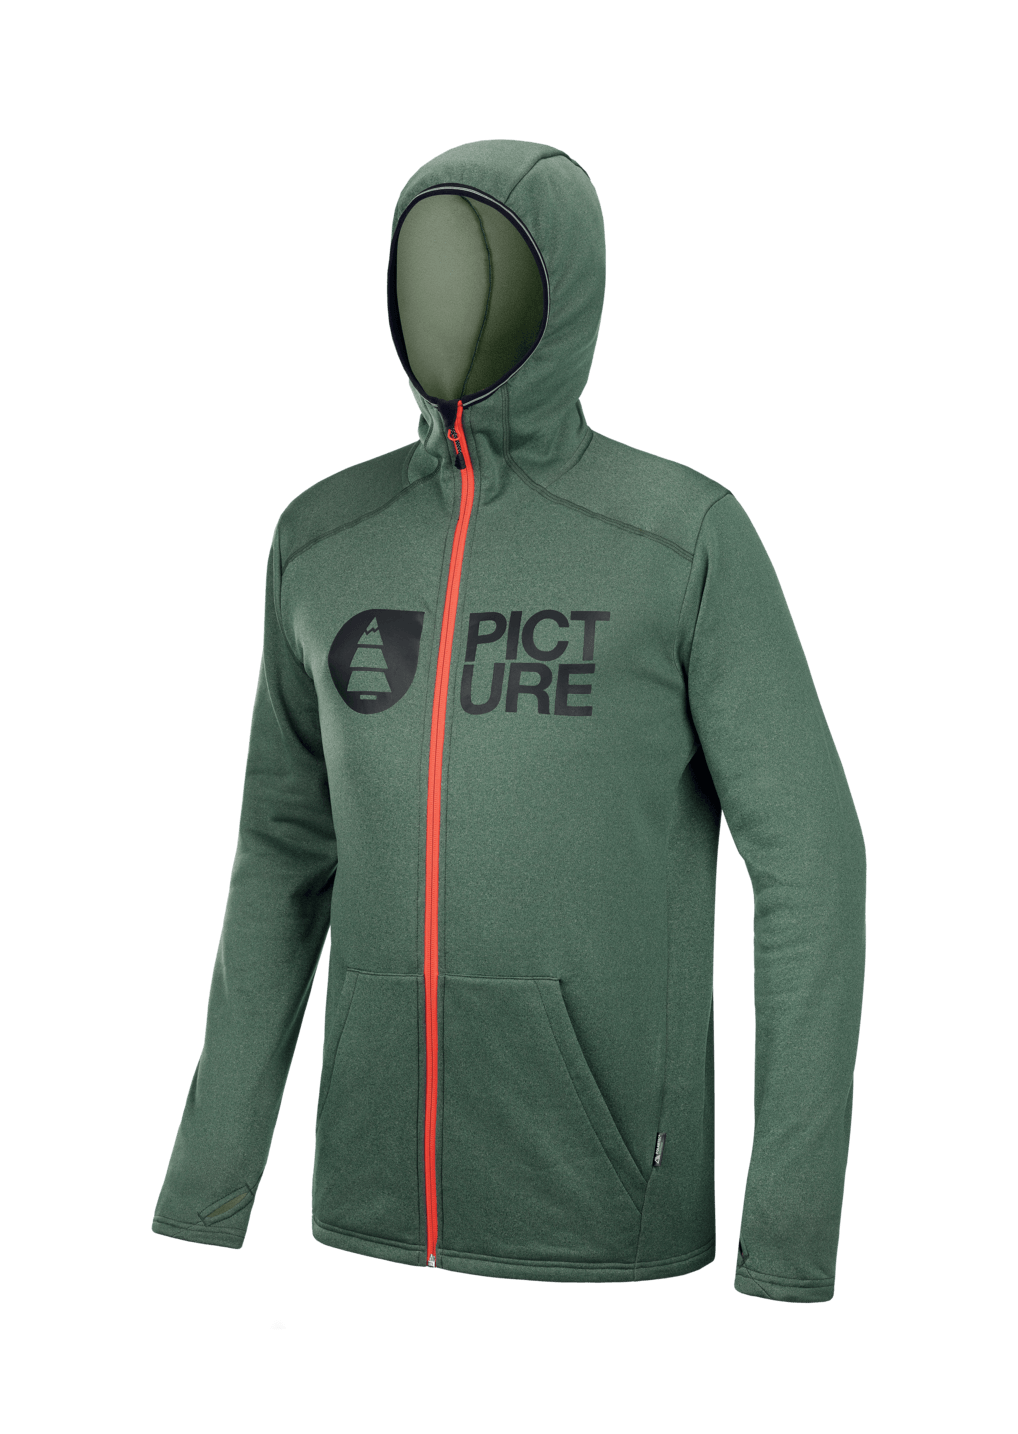 Picture Organic - M's Rony Zip Tech Hoodie - Recycled Polyester - Weekendbee - sustainable sportswear